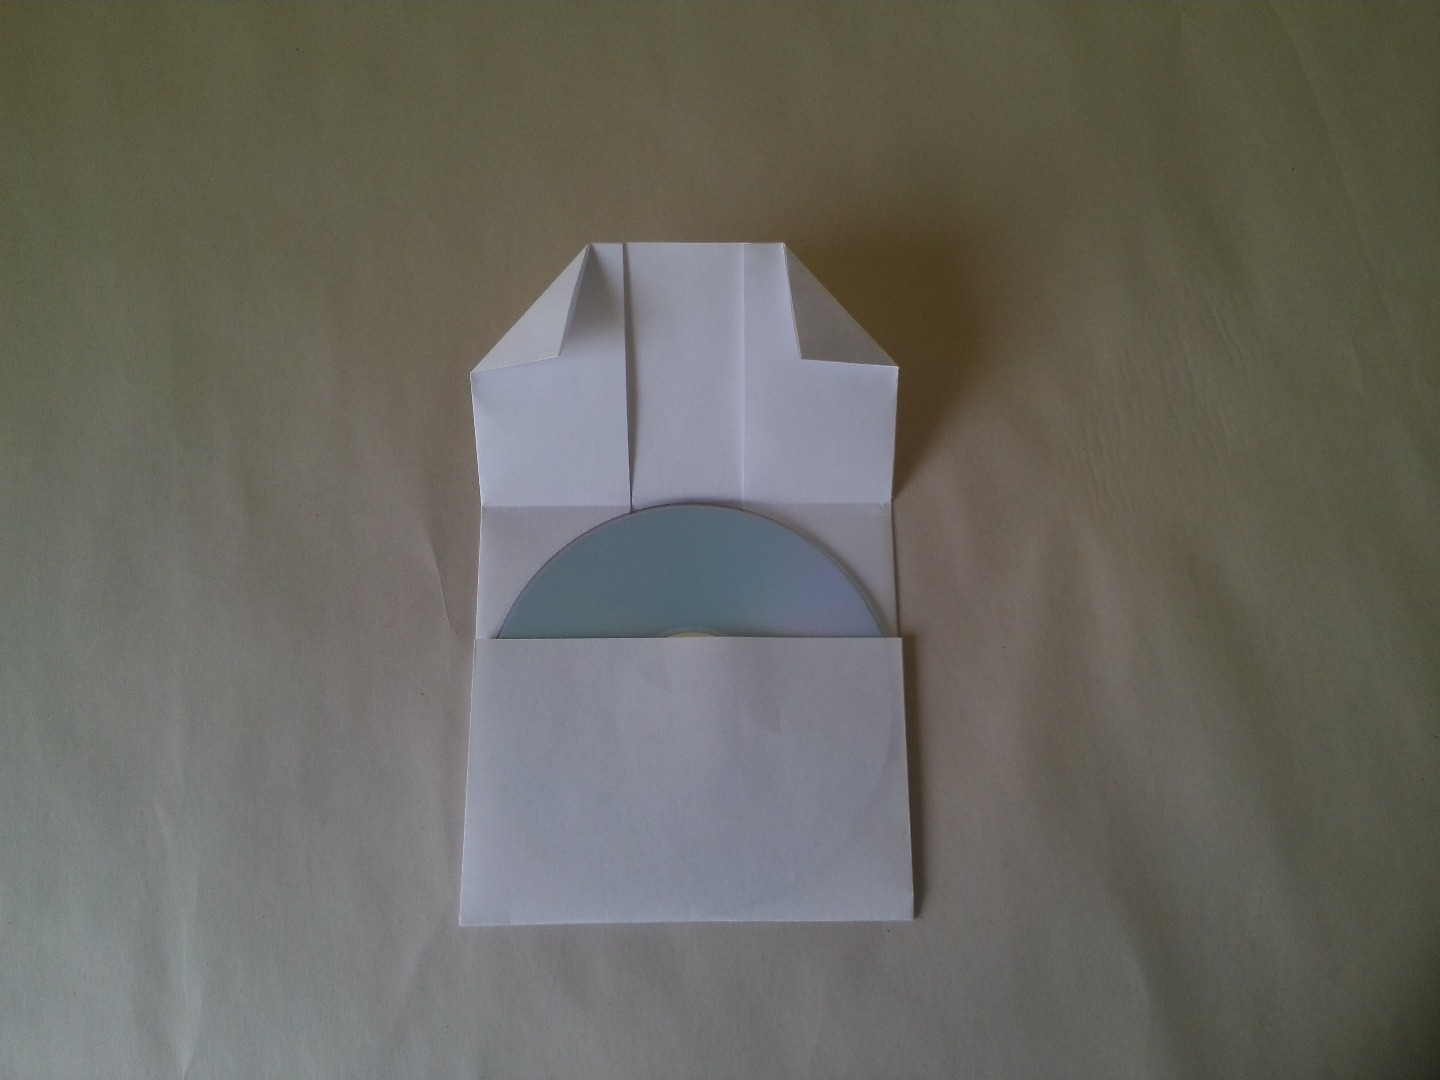 Picture of And Fold the Corners Down As Shown.